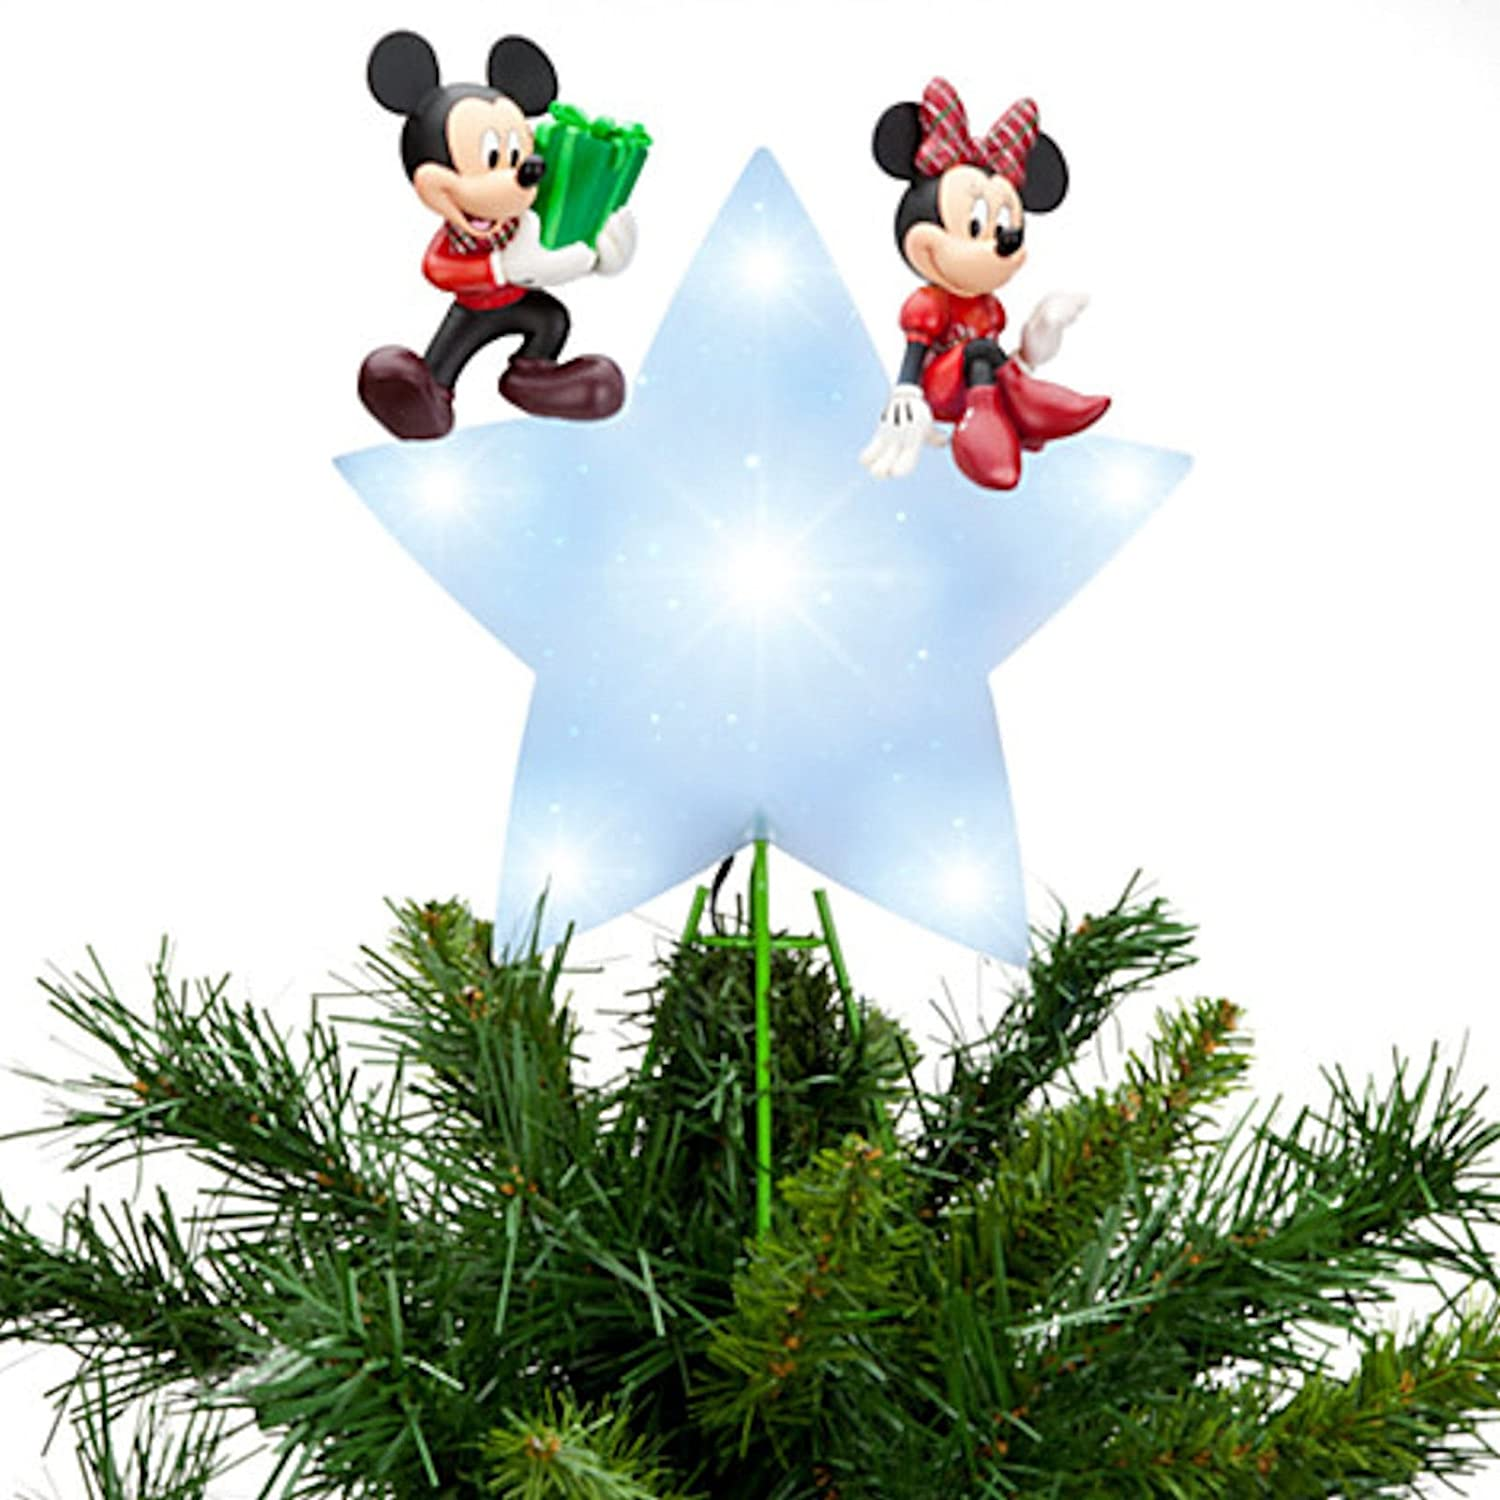 amazoncom disney store mickey minnie mouse lighted christmas holidays tree topper new in box kitchen dining - Disney Christmas Tree Topper